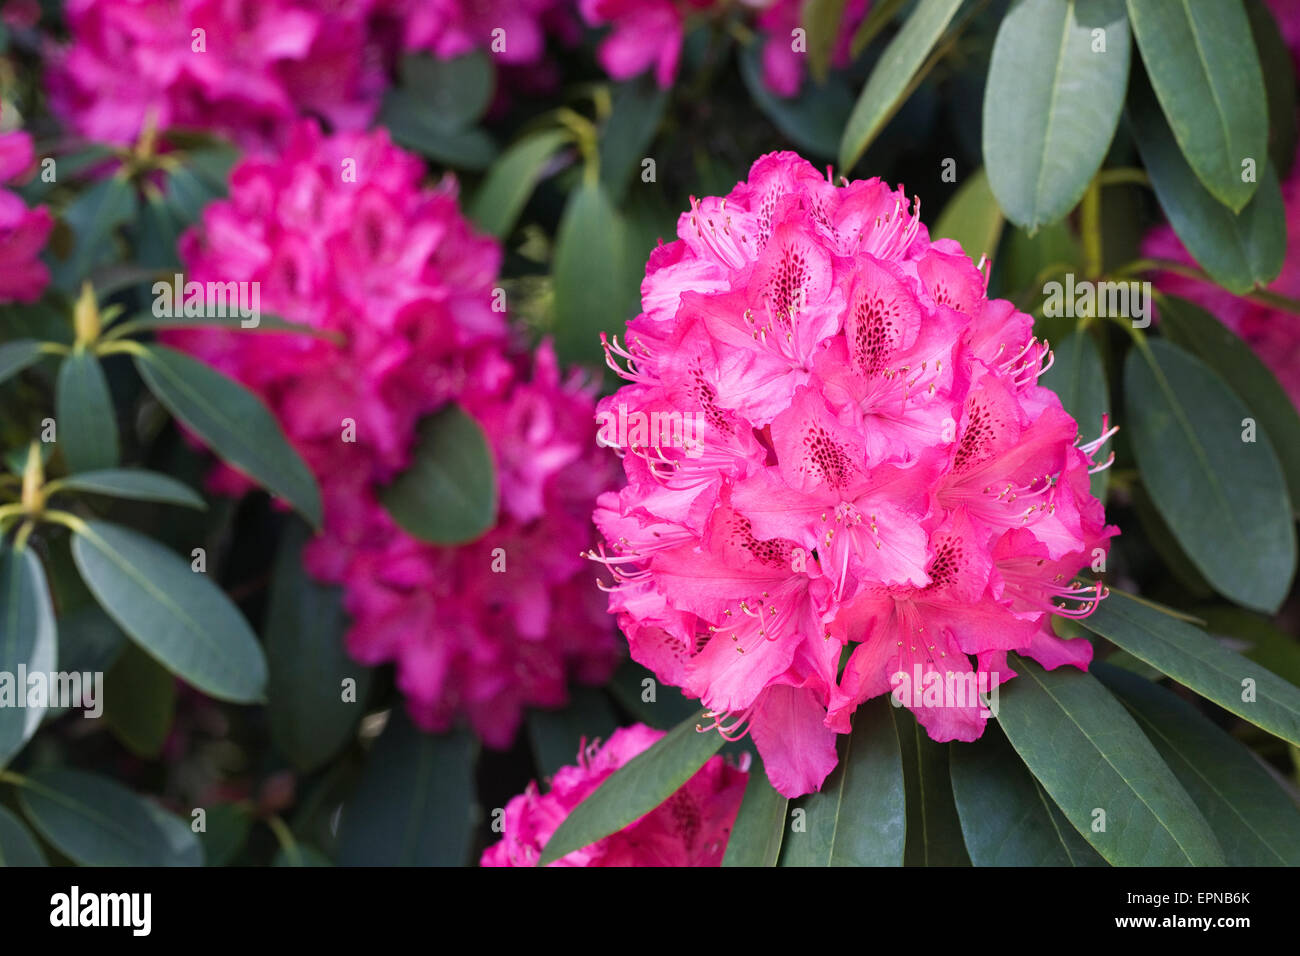 Large magenta pink Rhododendron. - Stock Image